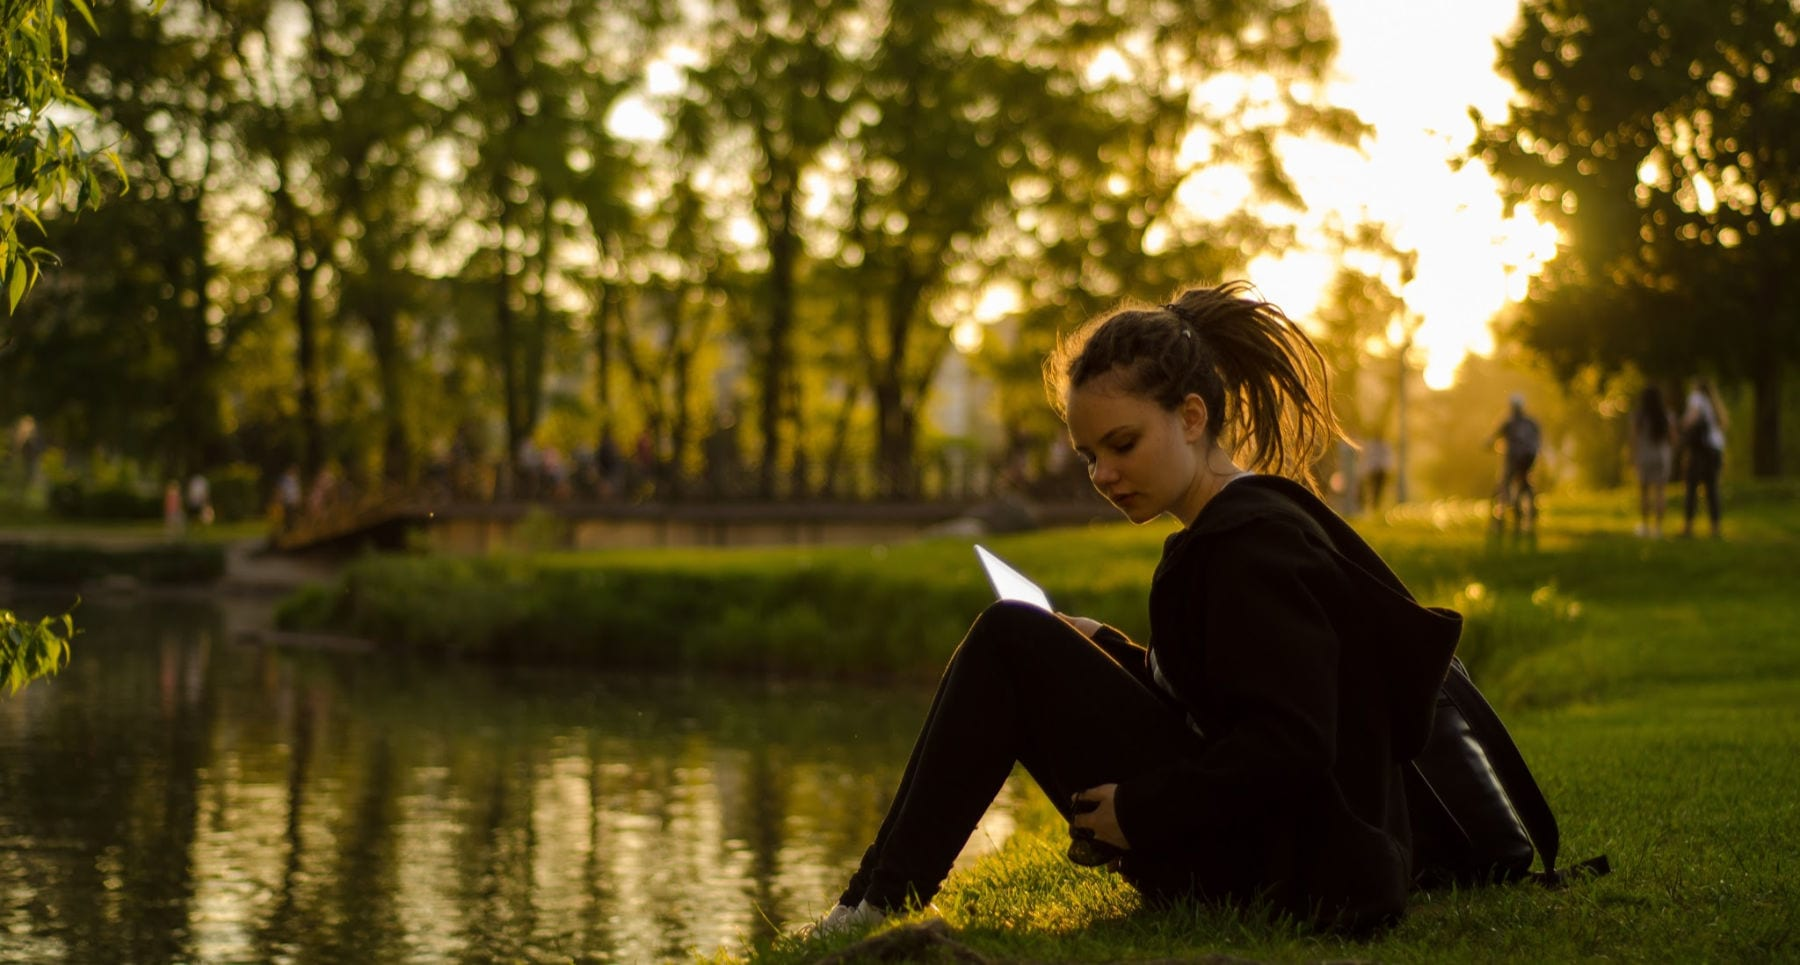 girl studying by pond learn more about God and His plan for you